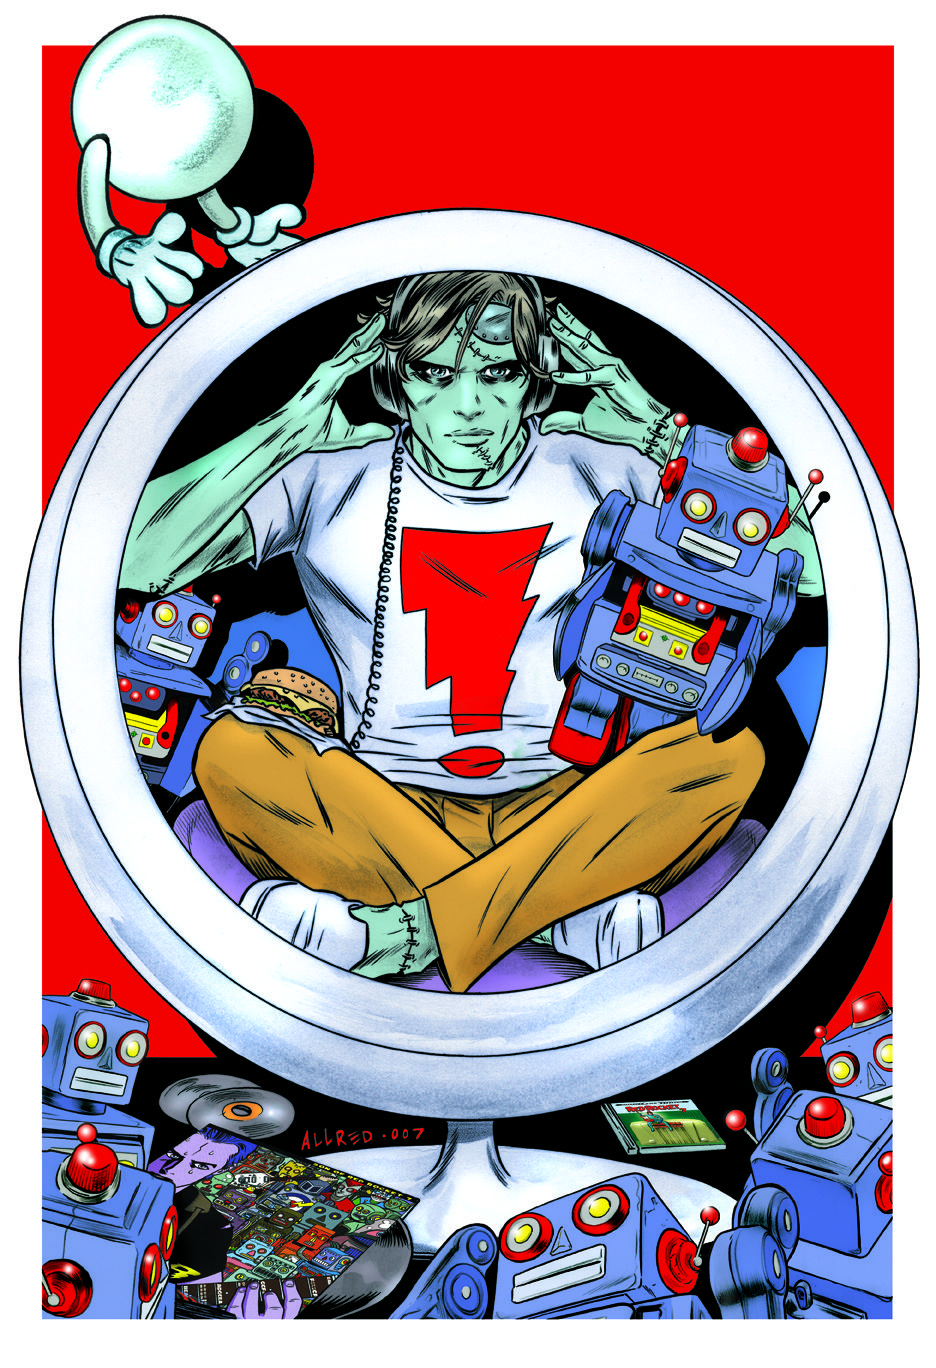 Frank Einstein, by Mike Allred...if ya' didn't know!